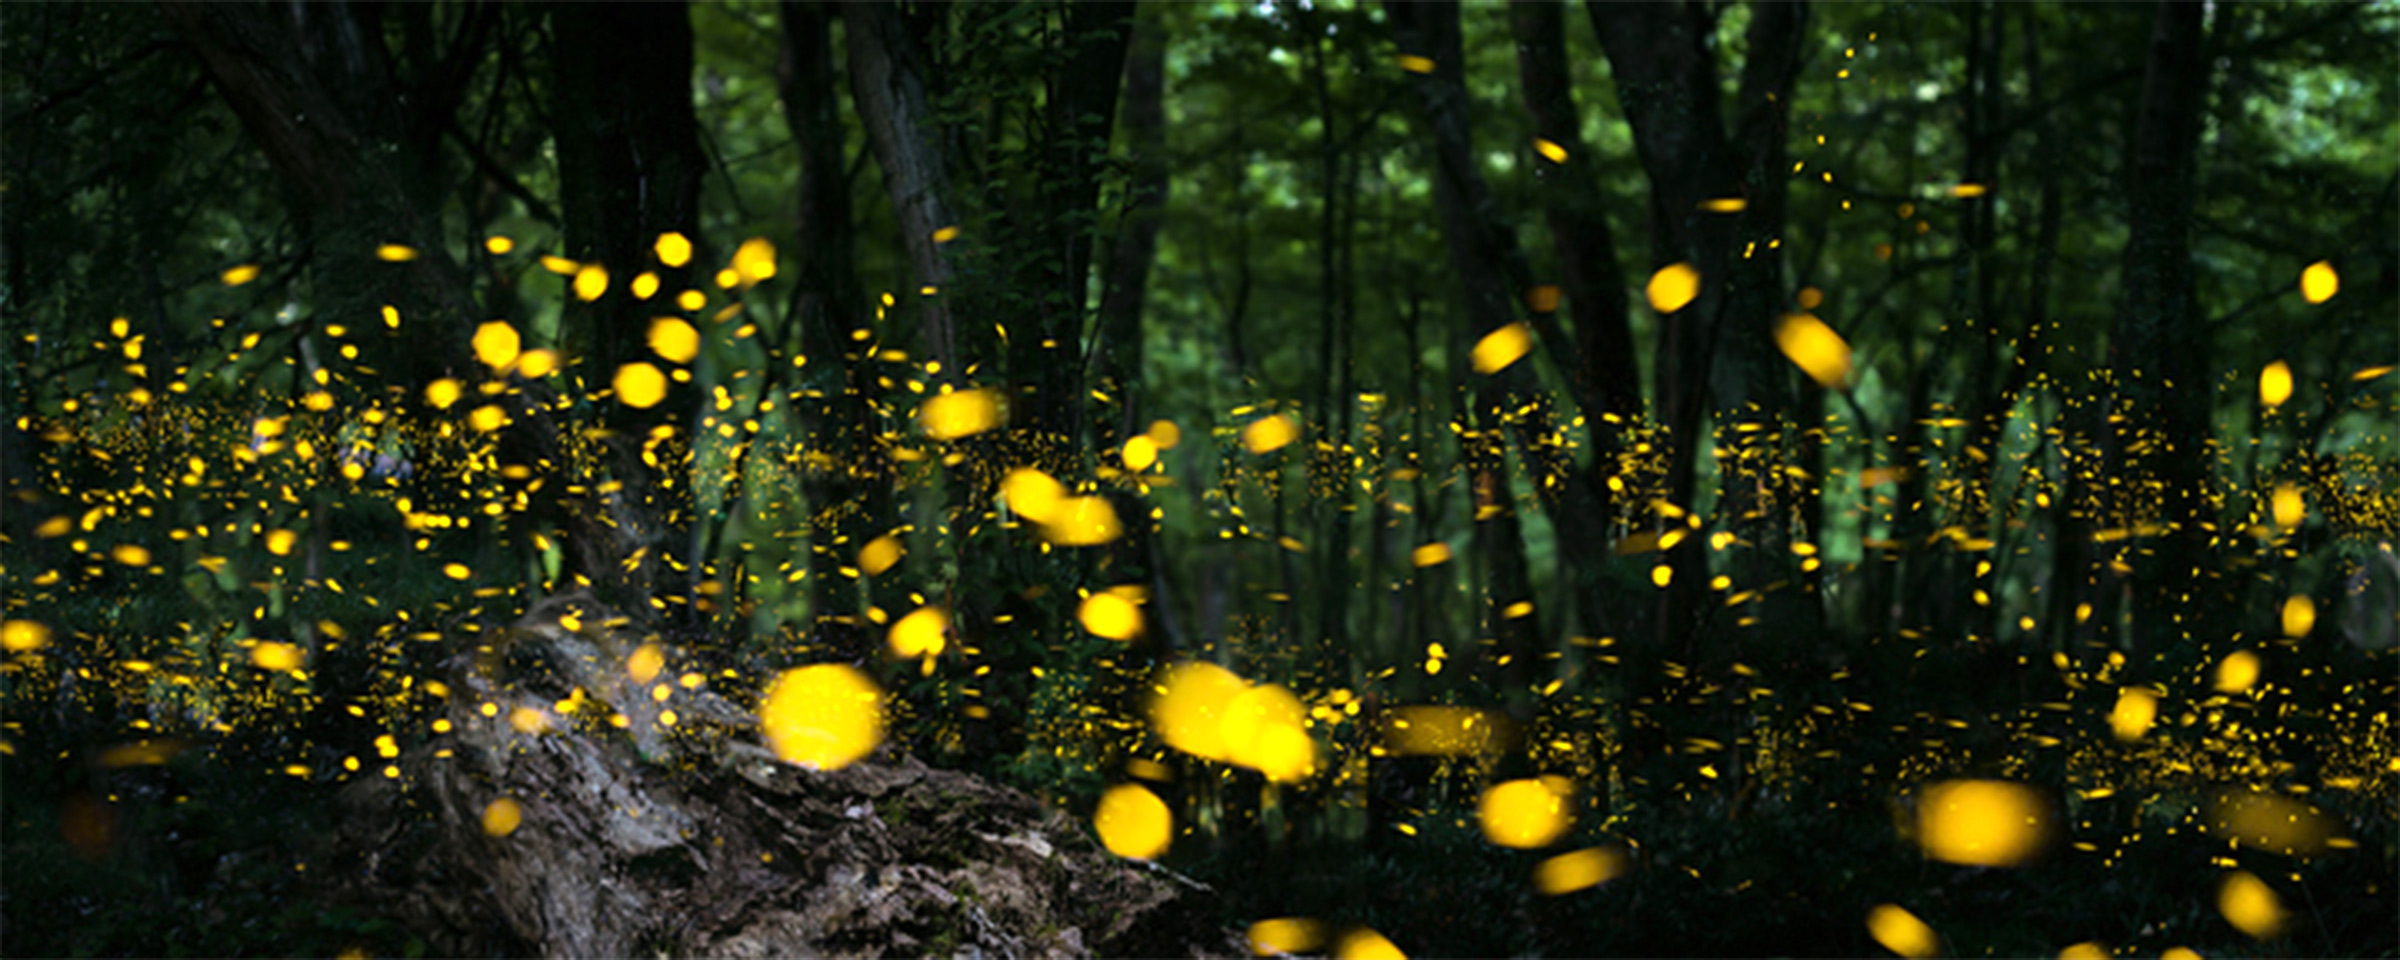 Firefly Insect At Night A Galaxy Of Fireflies Or Not Researchers Study Lighting